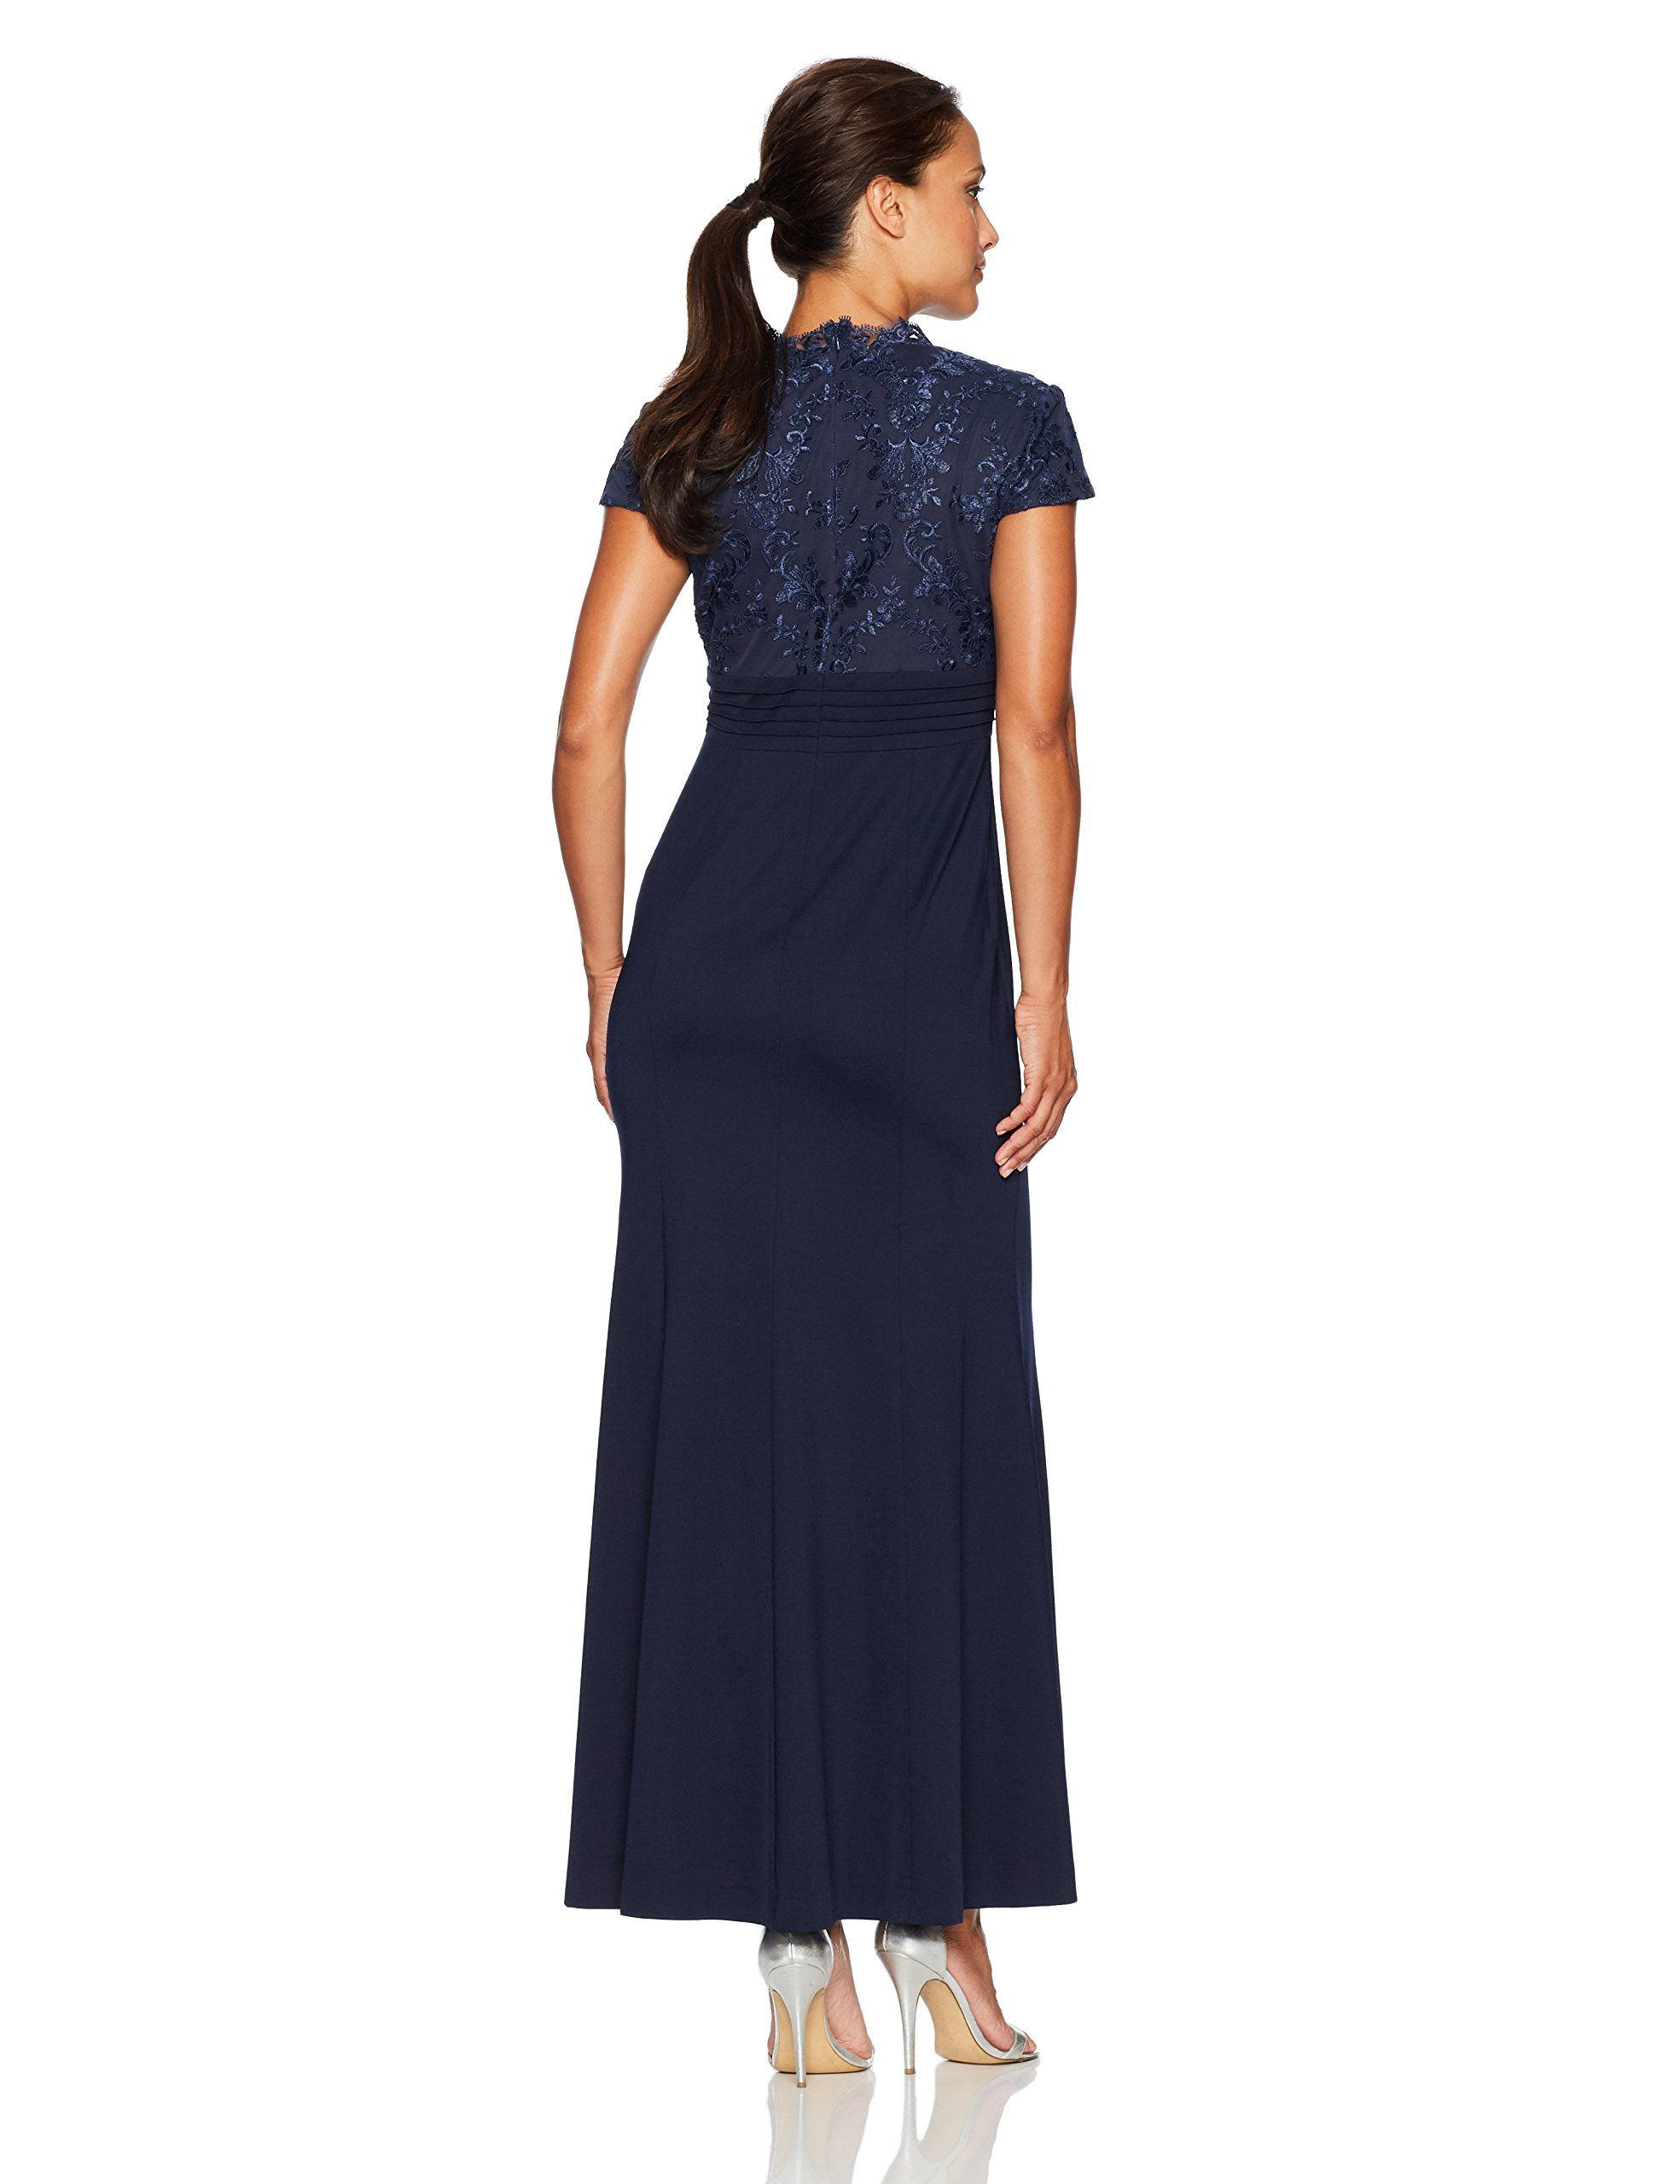 589e6e8042ad4 Alex Evenings Womens Petite Embroidered Bodice Dress with Fit and Flare  Skirt Regular Sizes Navy 12P * Find out more about the great product at the  image ...